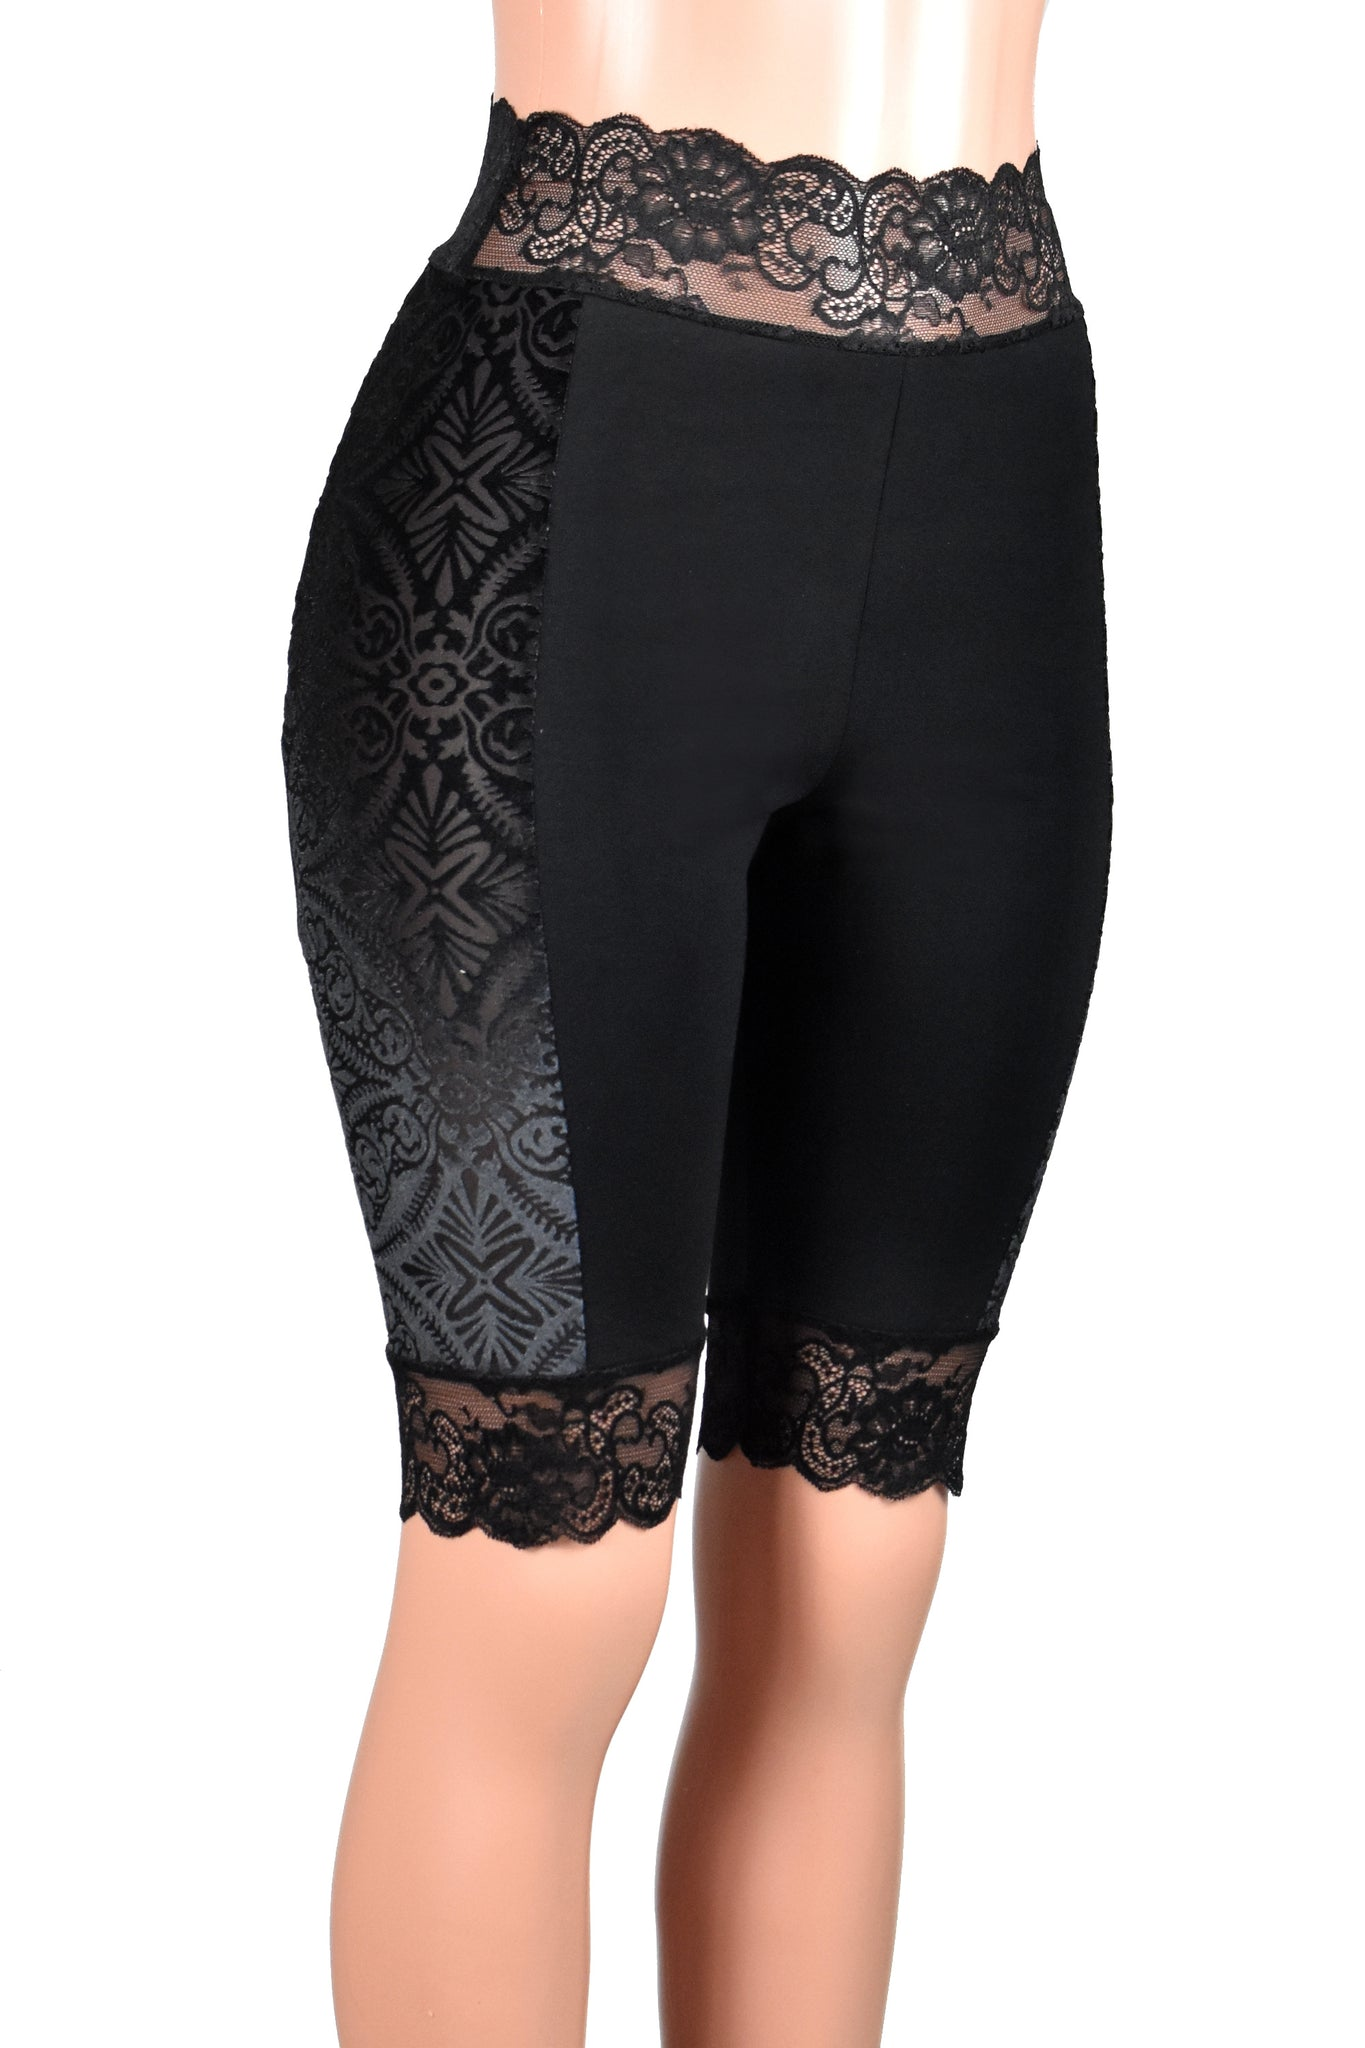 These black high-waisted knee length shorts have a stretch lace waistband. The side panels are made out of sheer brocade velvet burnout stretch fabric. Wear them under skirts, dresses, or shorts for extra leg coverage.